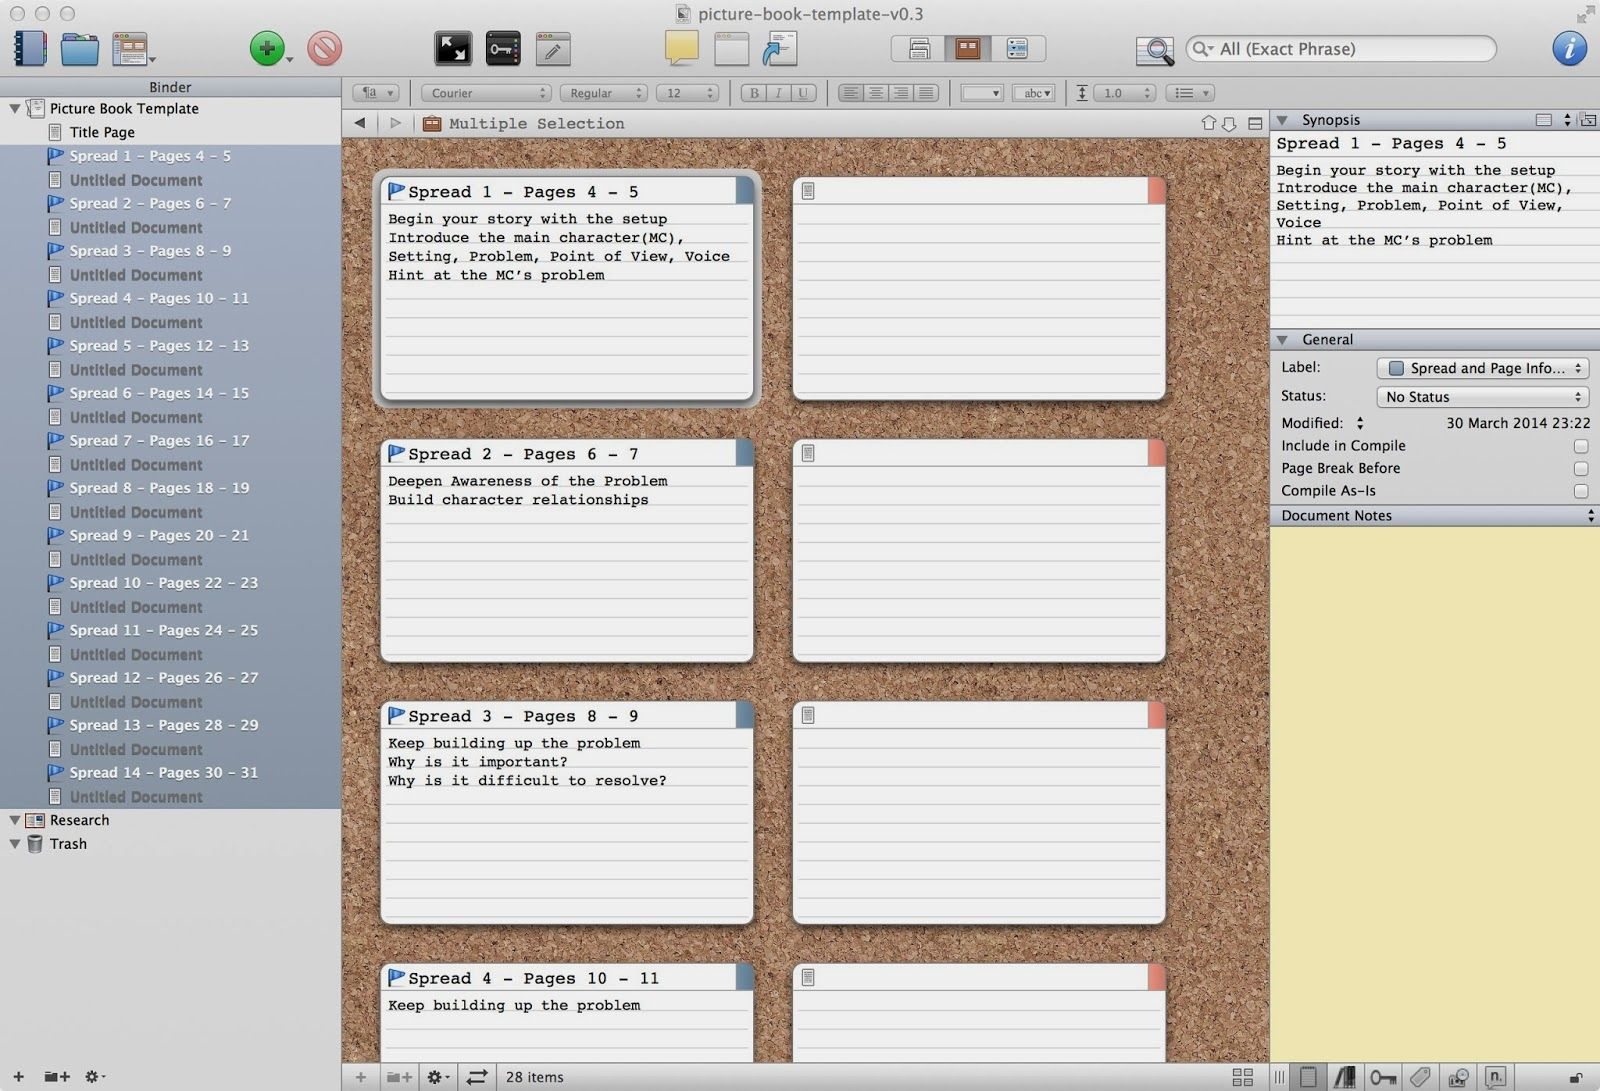 Claire obrien art writing a picture book in scrivener free claire obrien art writing a picture book in scrivener free scrivener template maxwellsz